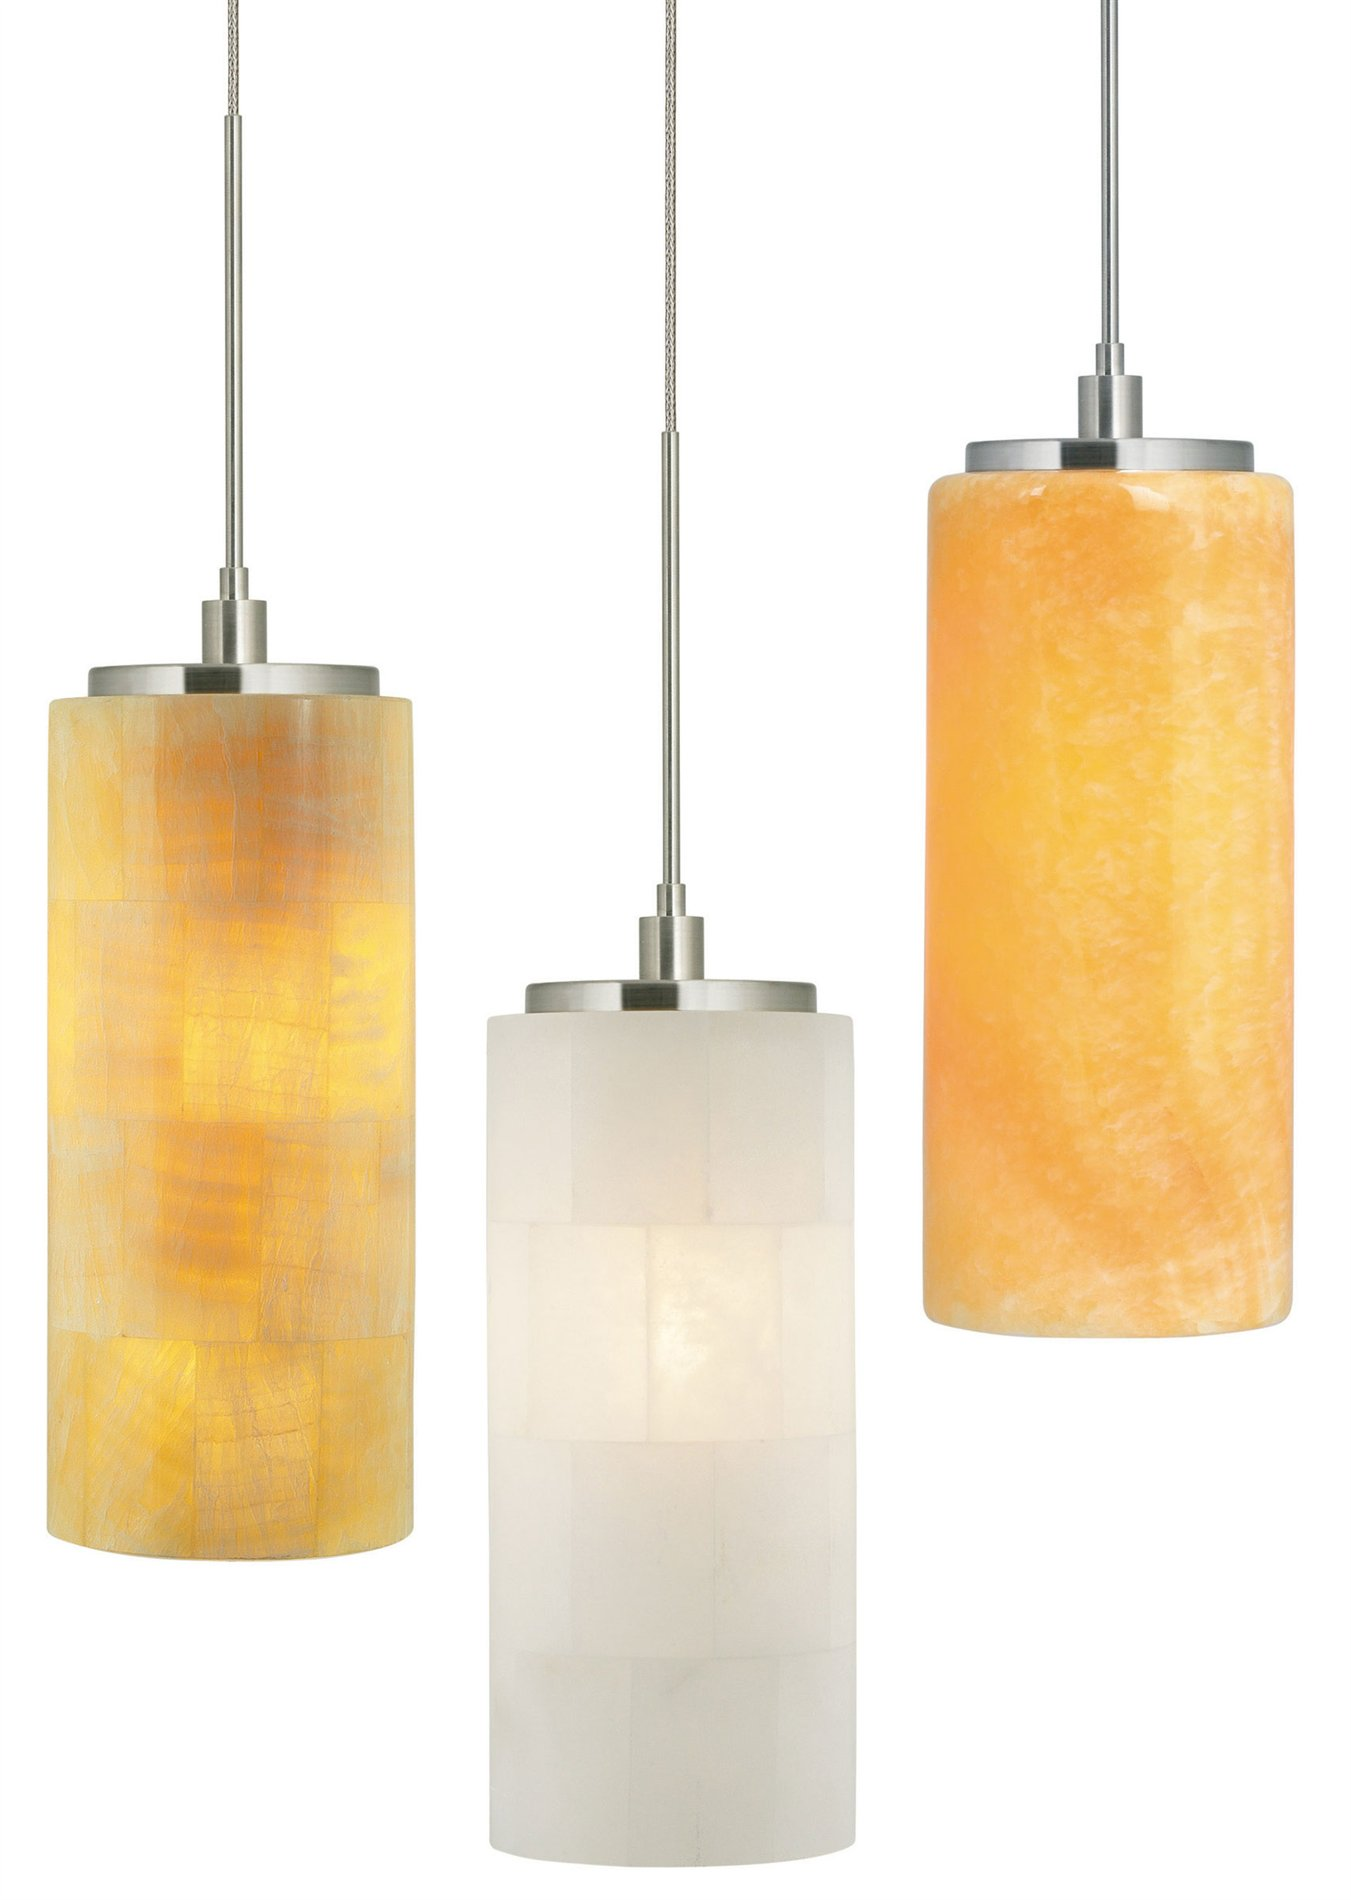 Stone Lighting PD132 Onyx Cylinder Transitional Mini